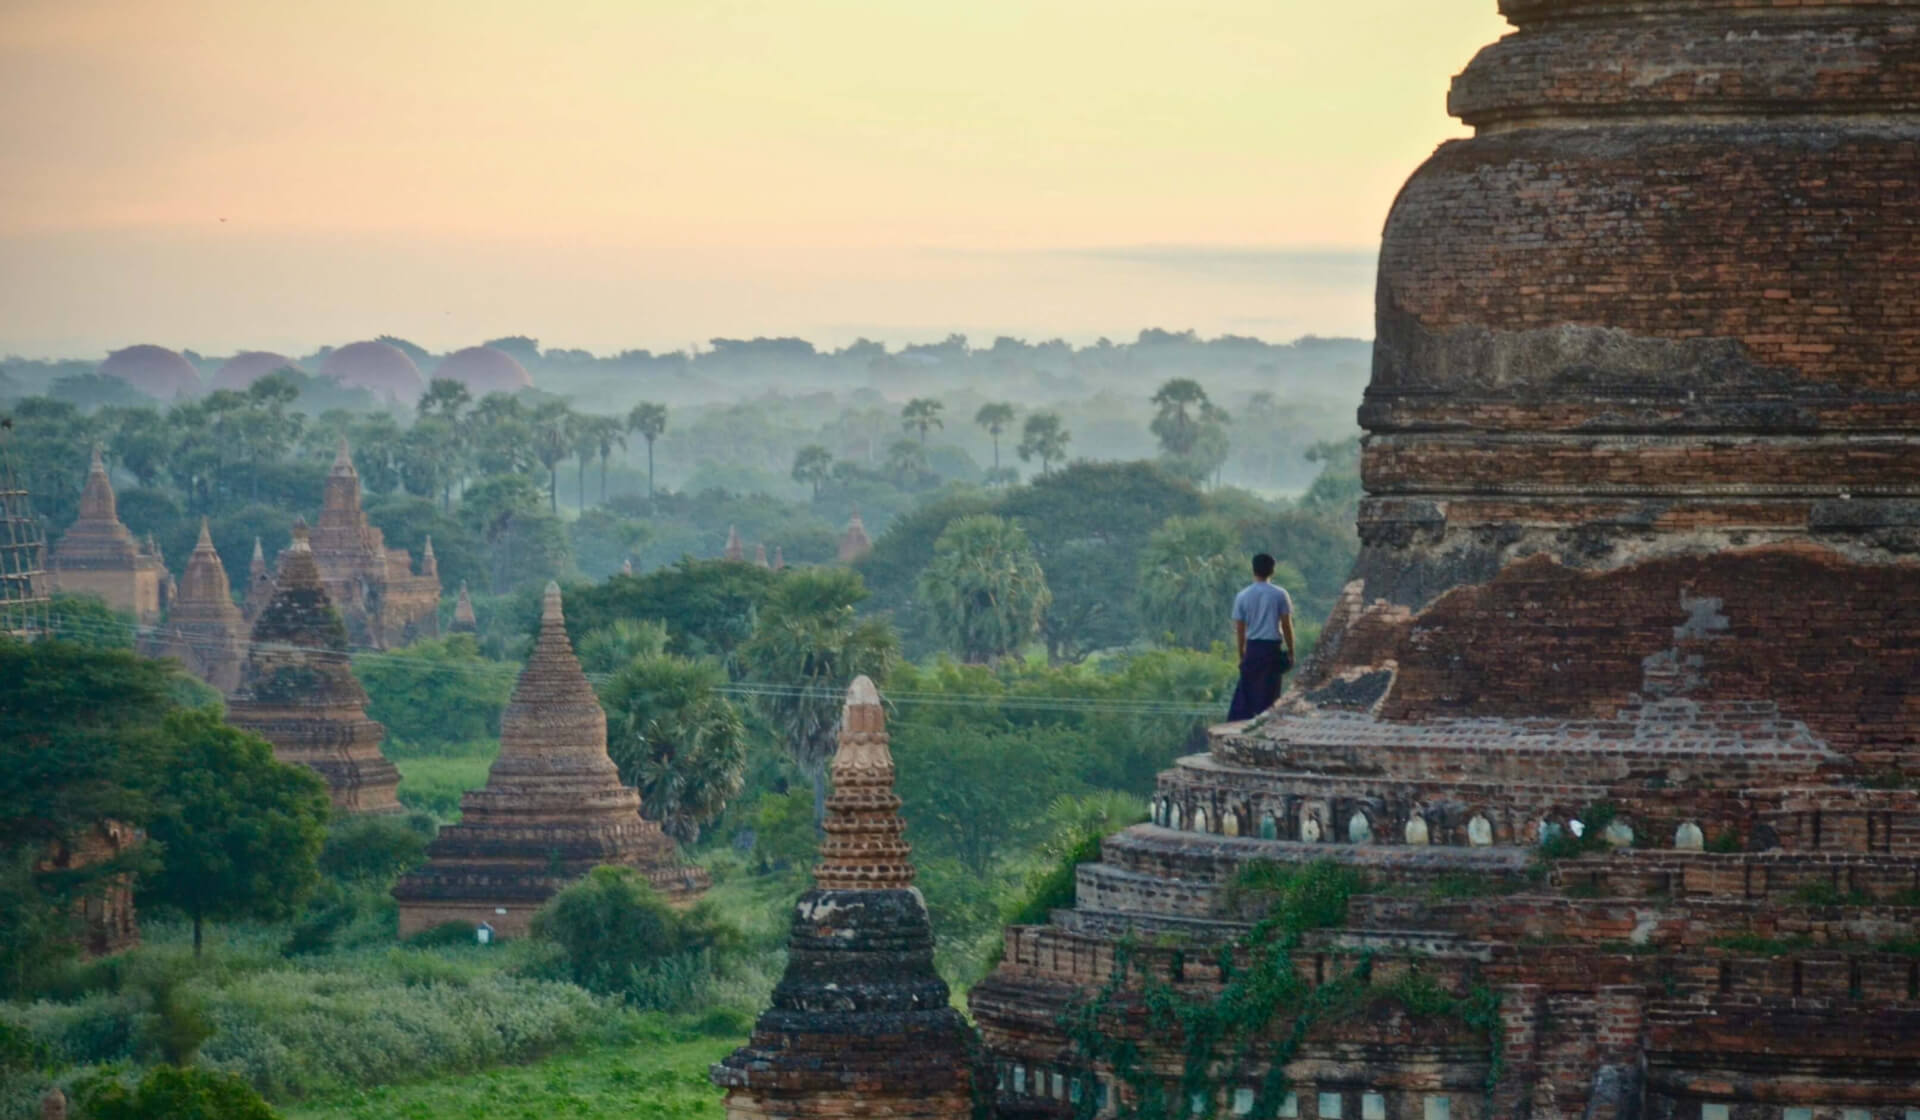 Man in a sarong standing on the top of a temple in Bagan, Myanmar overlooking palm trees and more temples